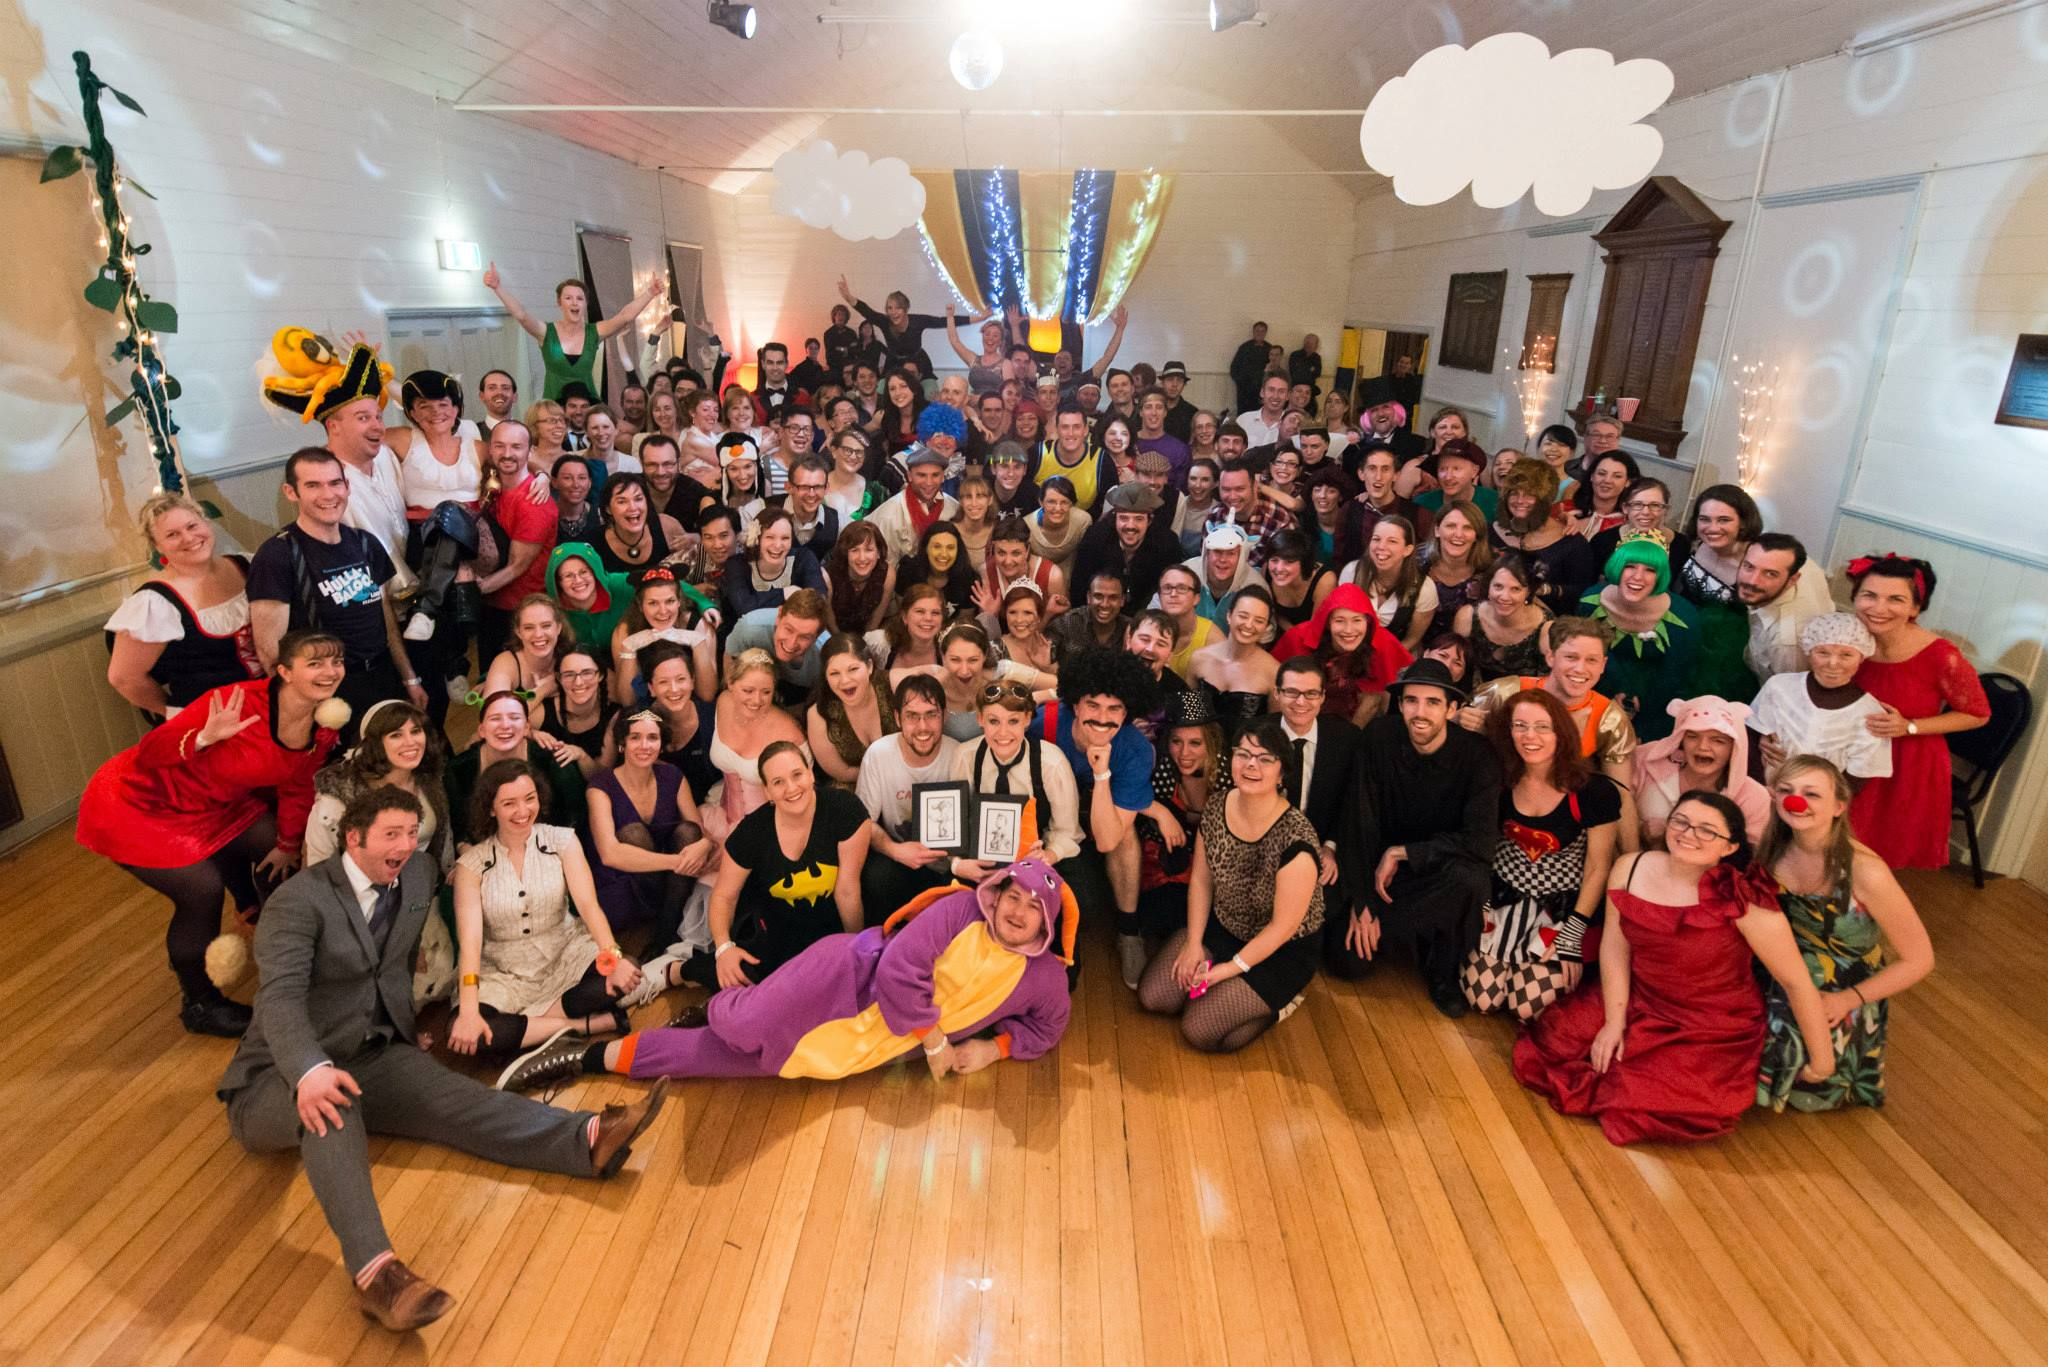 Fun times at Hobart's lindy hop event - Devil City Swing